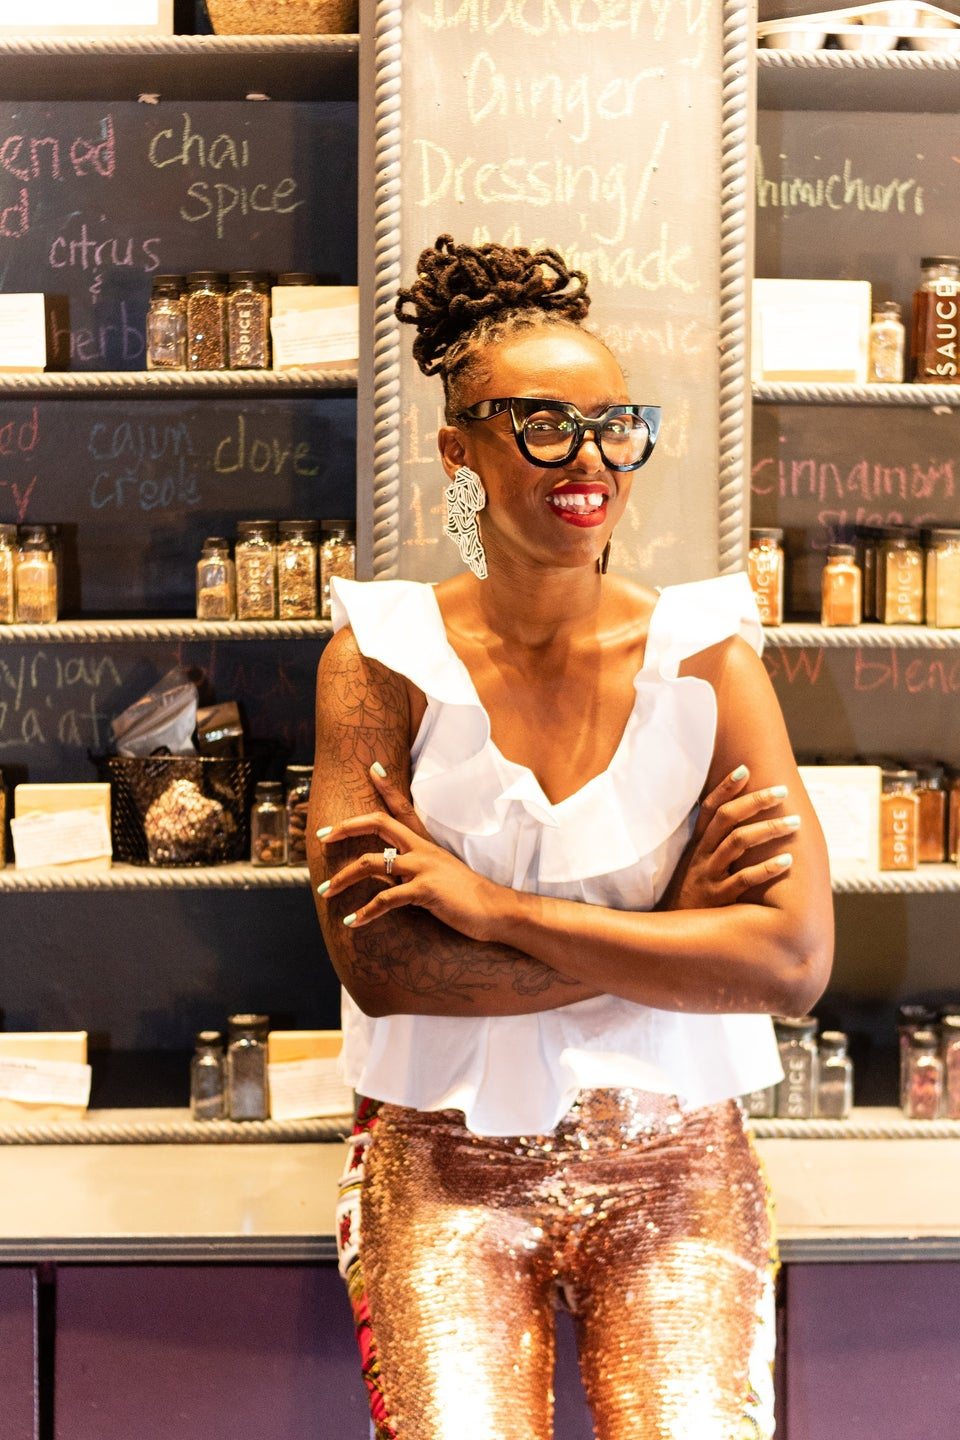 Meet The D.C. Spice Queen Helping To Strengthen Her Community While Living Her Entrepreneurial Dream